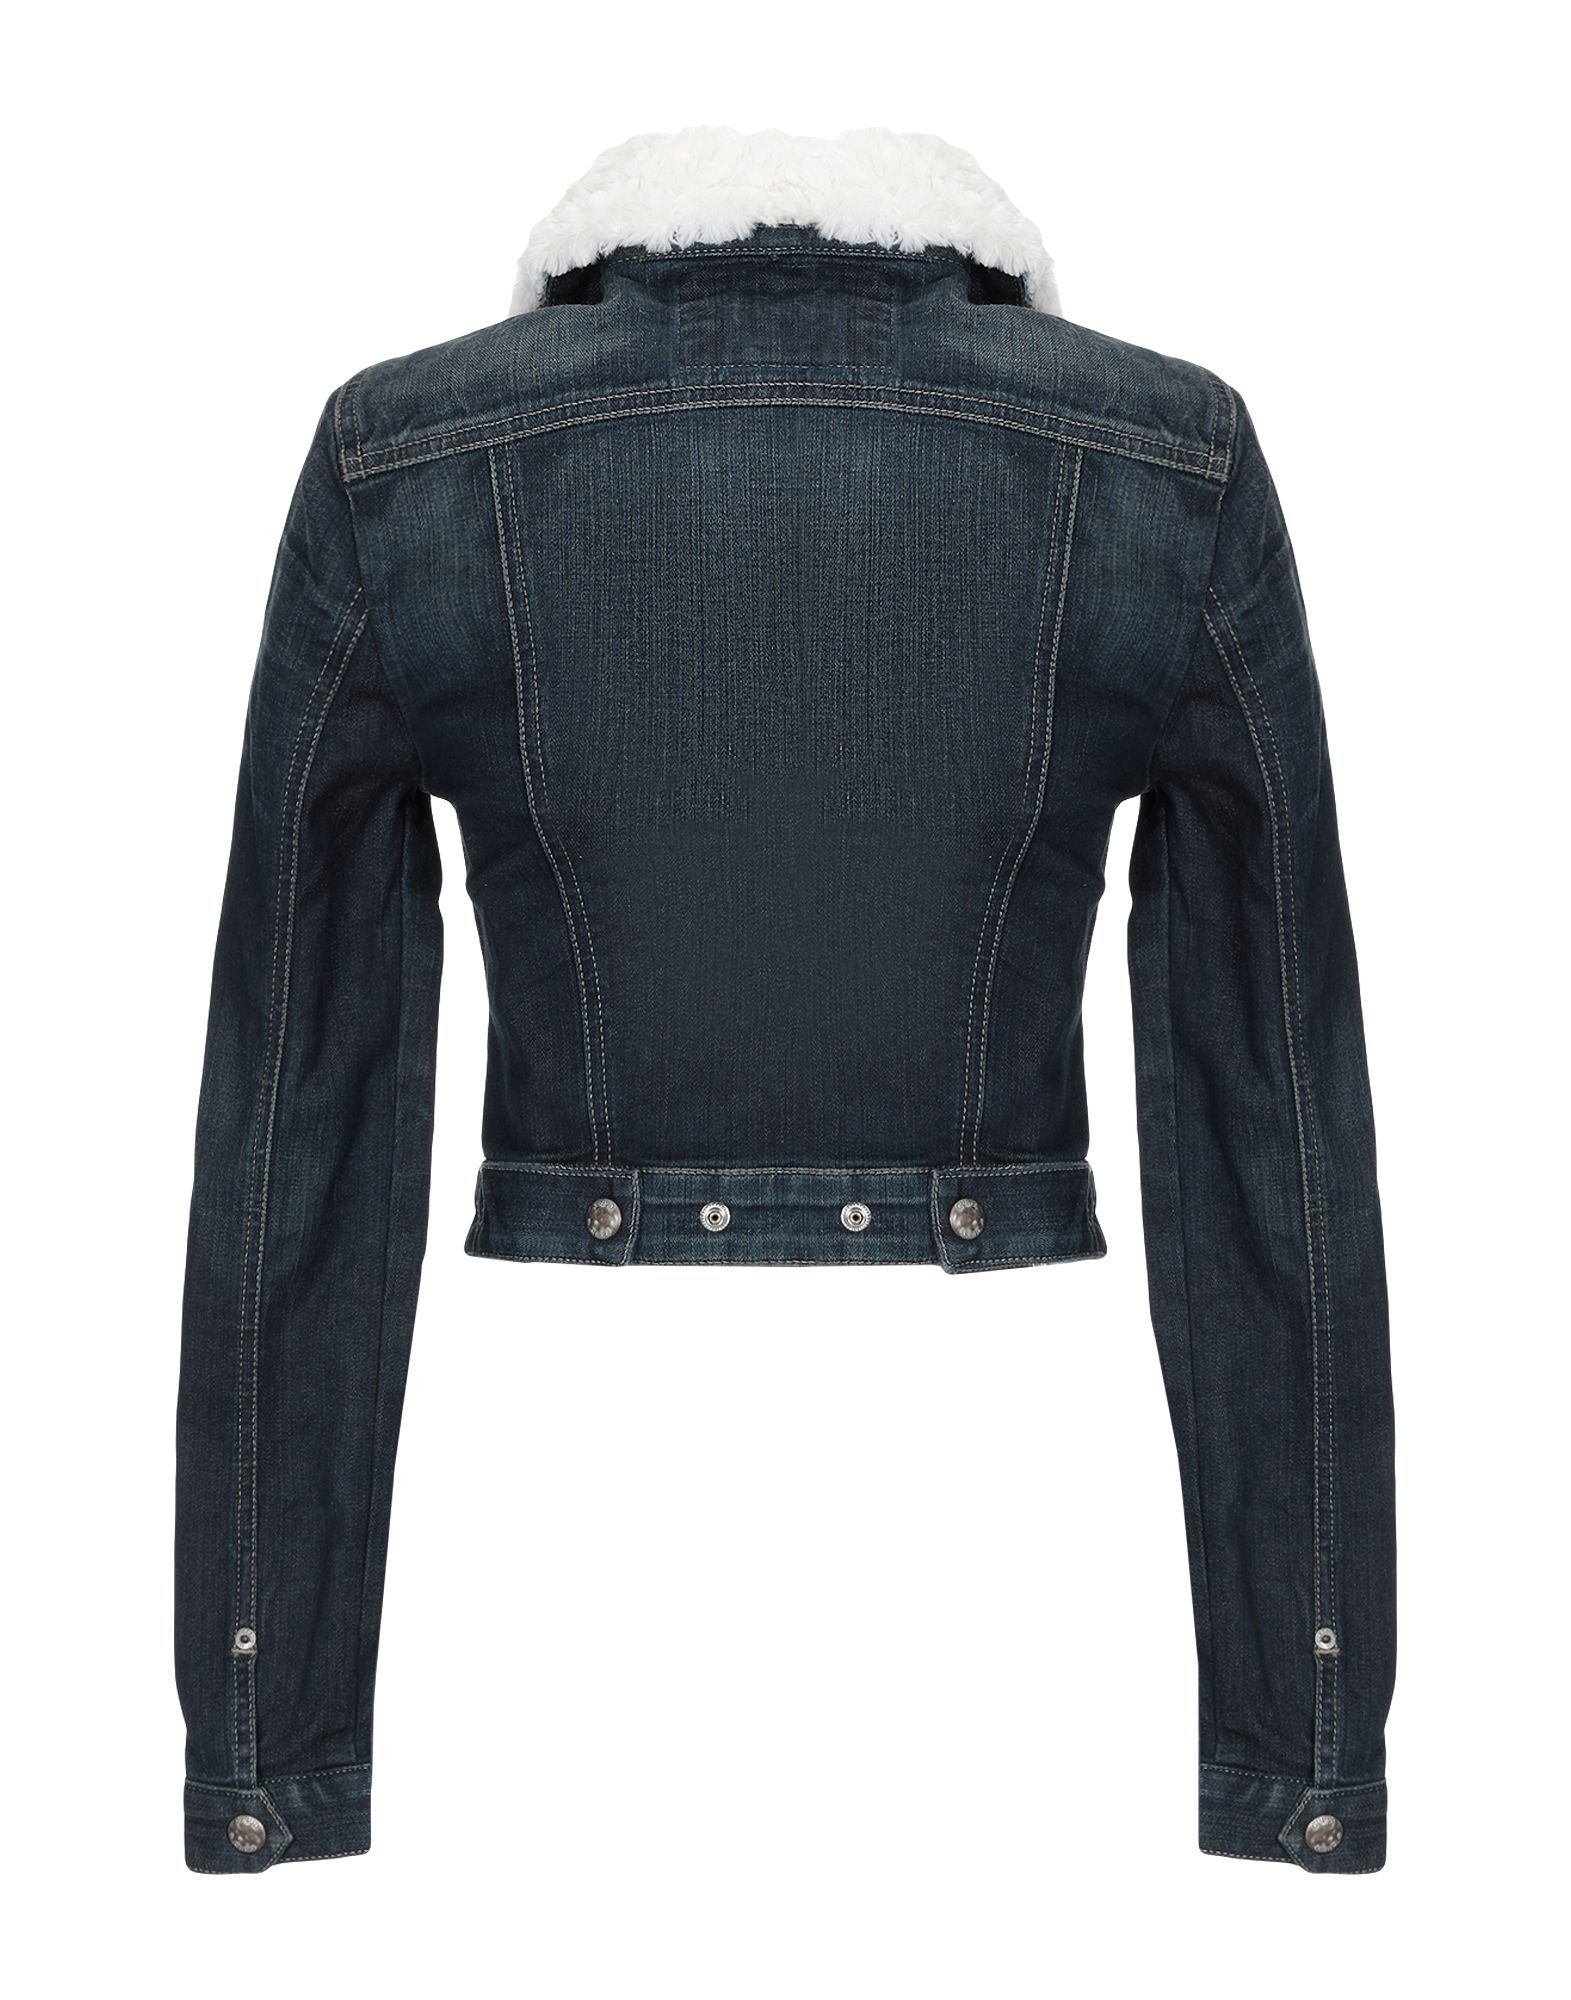 Guess Blue Denim Jacket With Faux Fur Collar